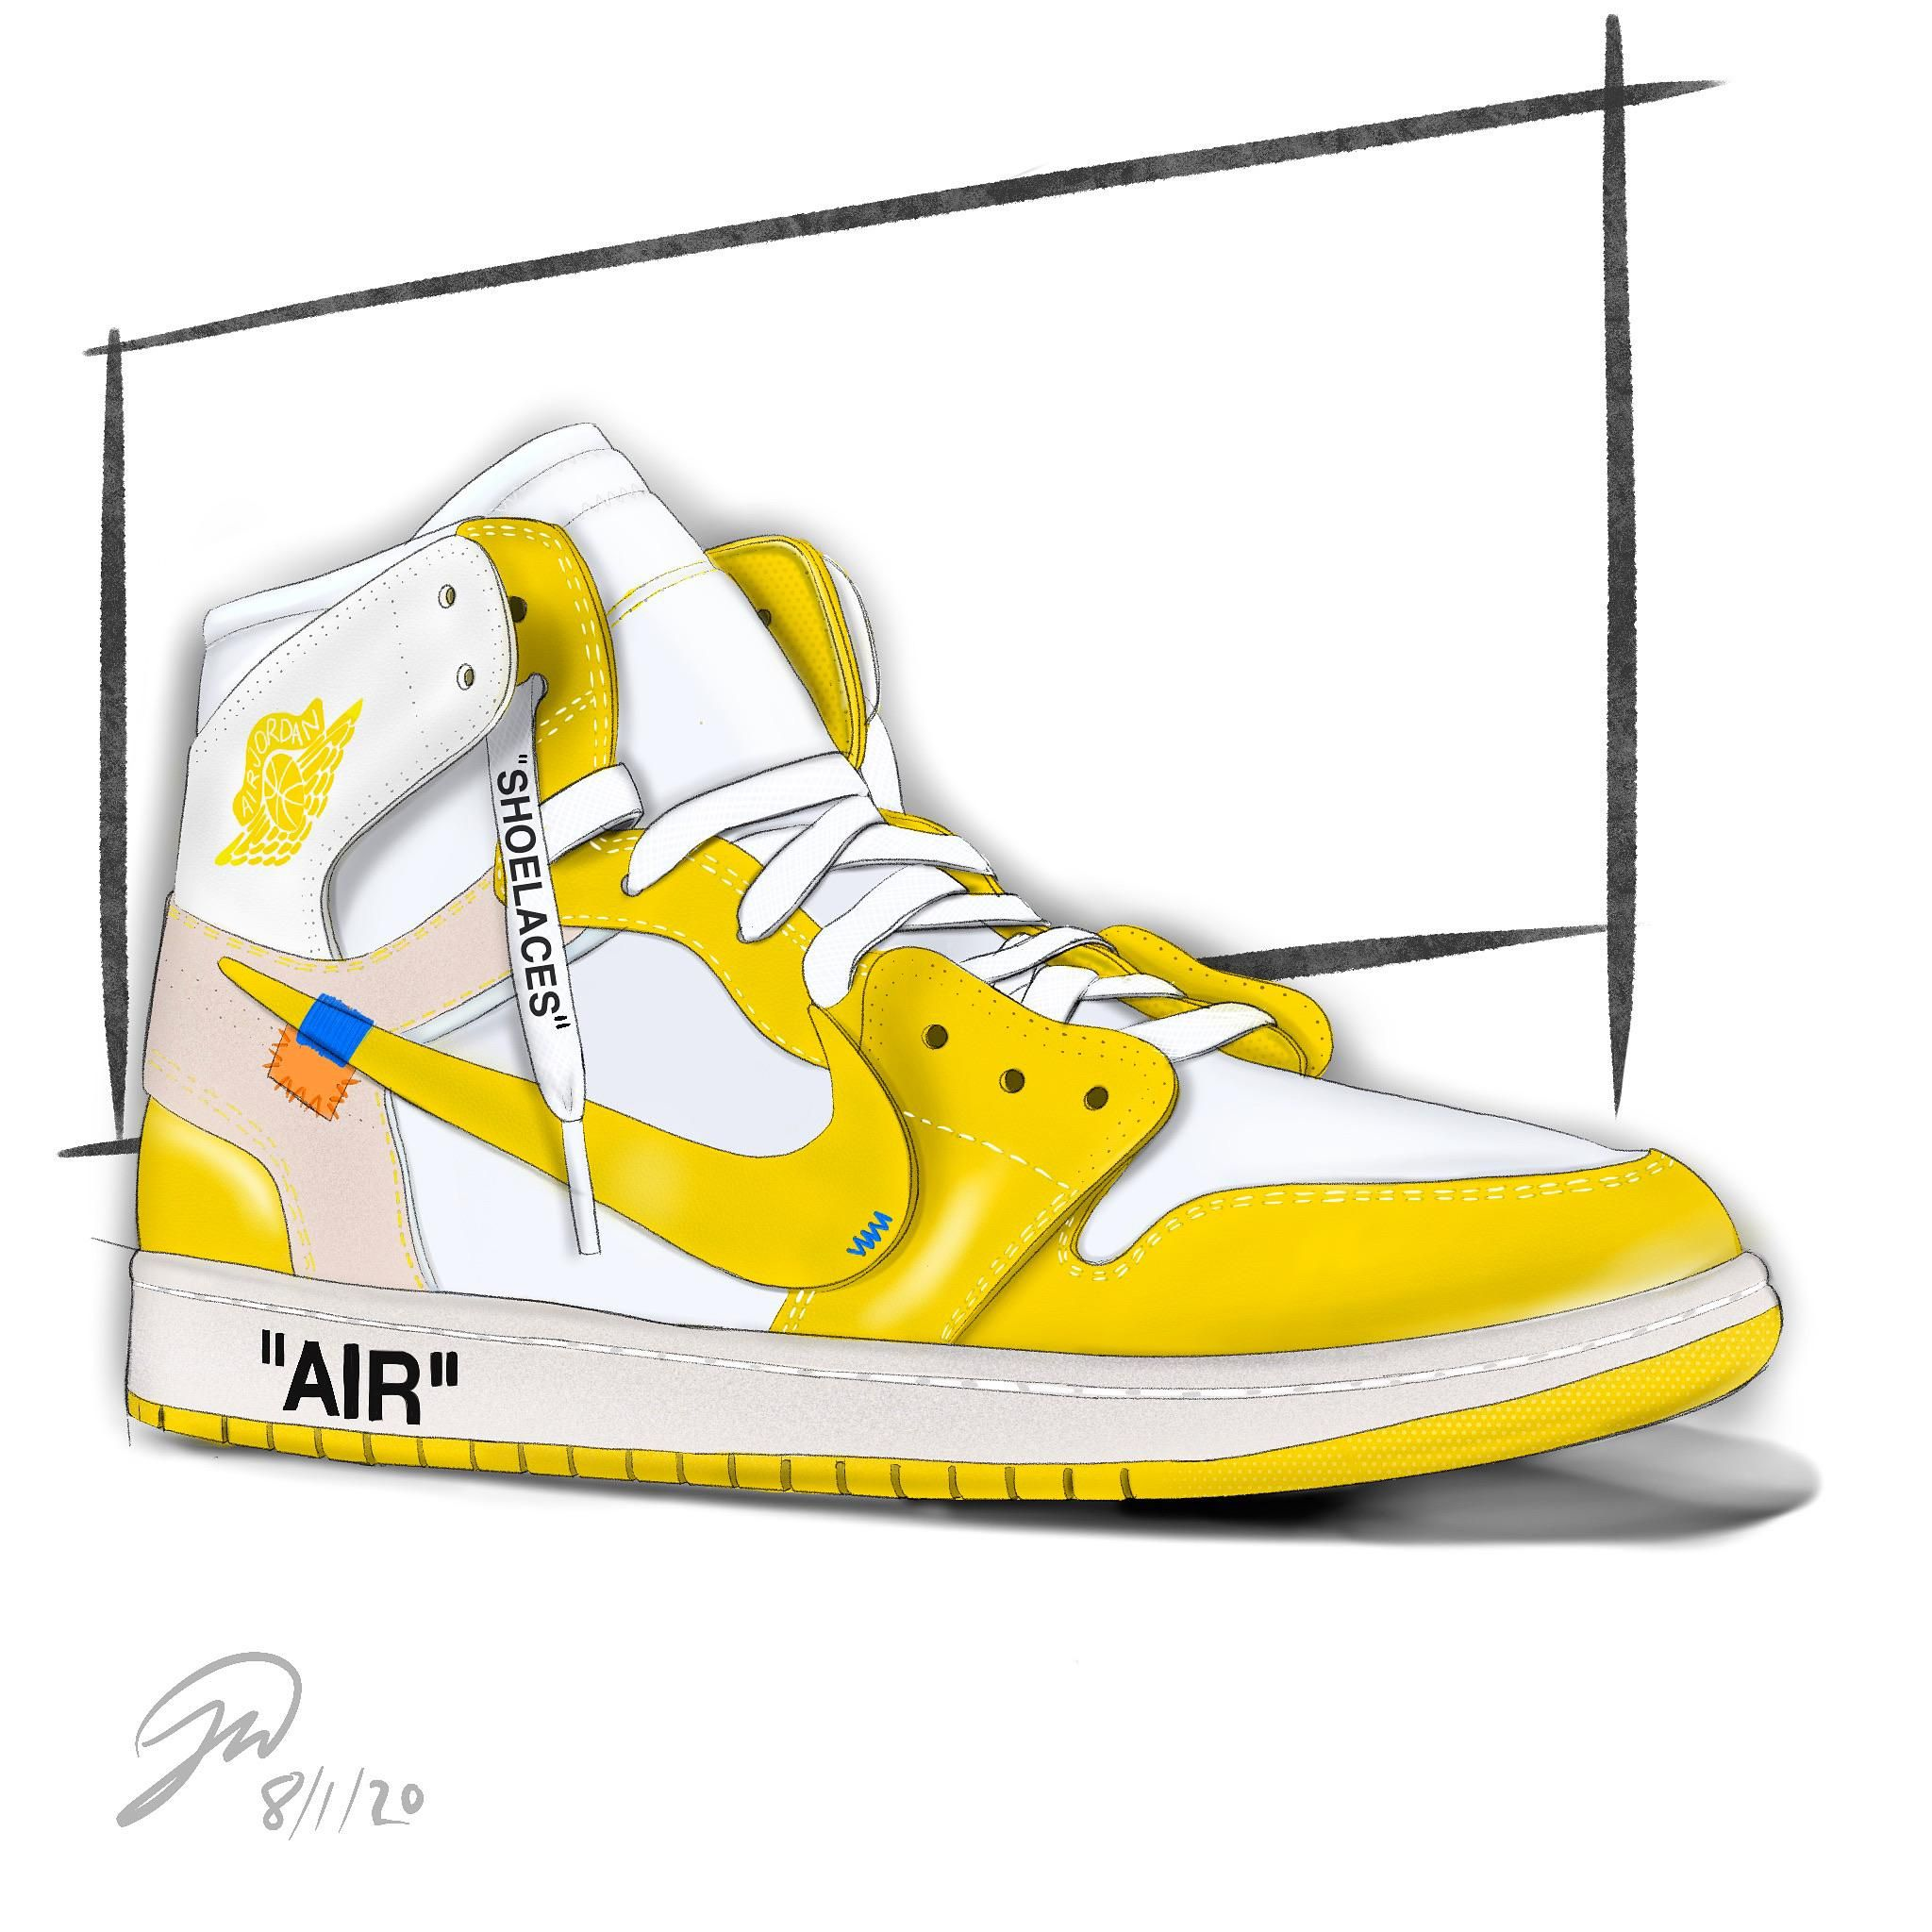 My Sketch Of The Off White X Nike Air Jordan 1 Canary Yellow I